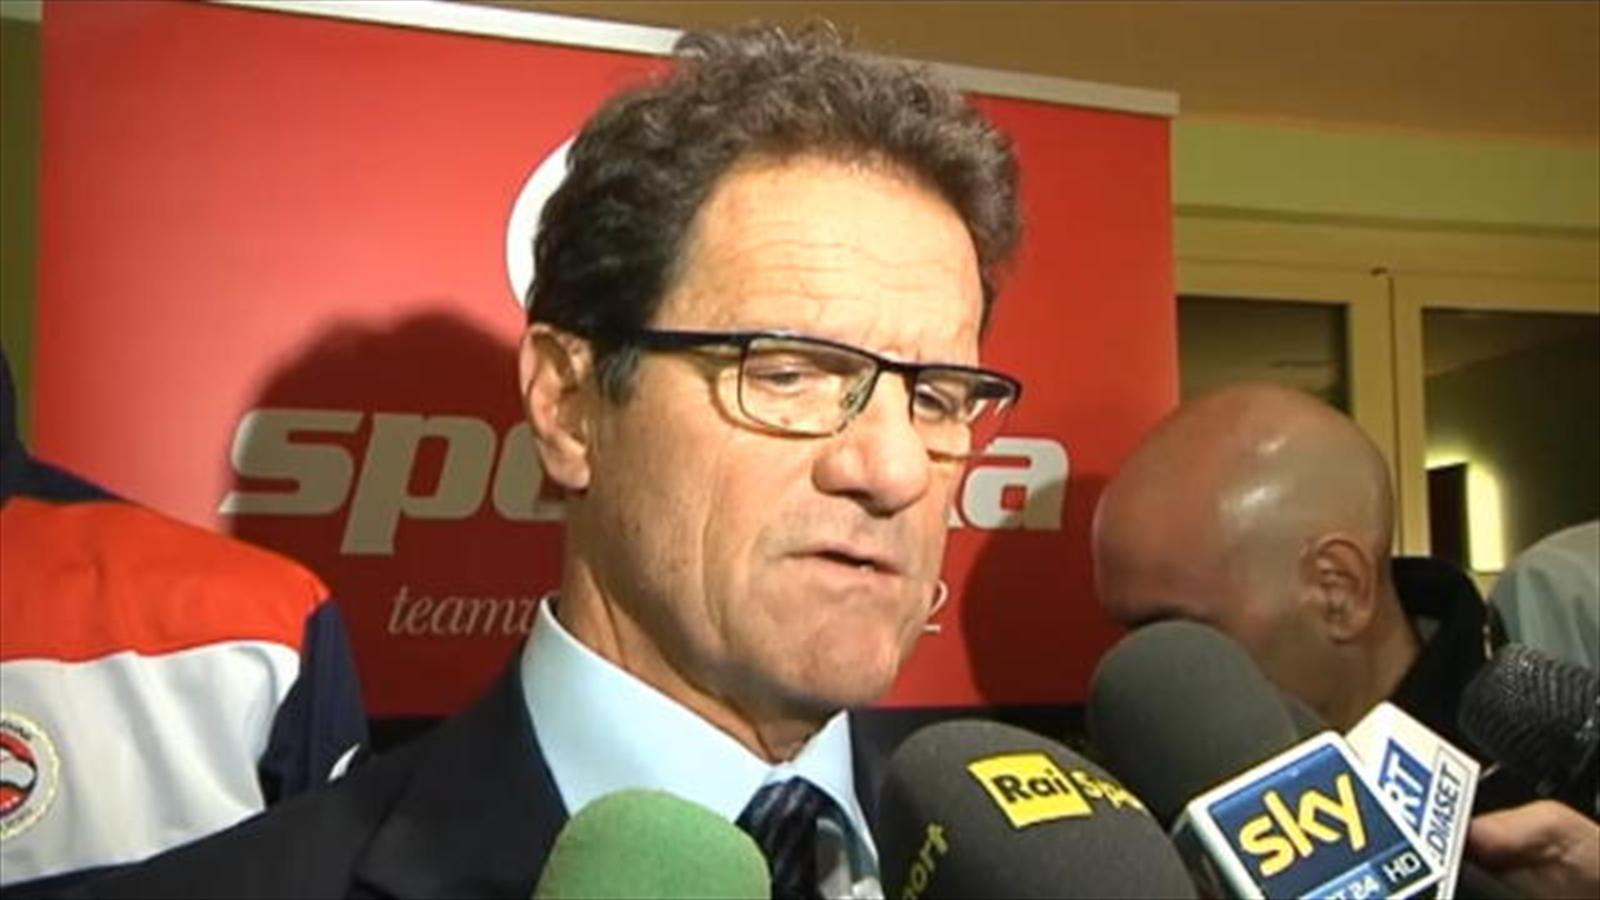 Russia coach fabio capello his tipped brazil as the strong favourites